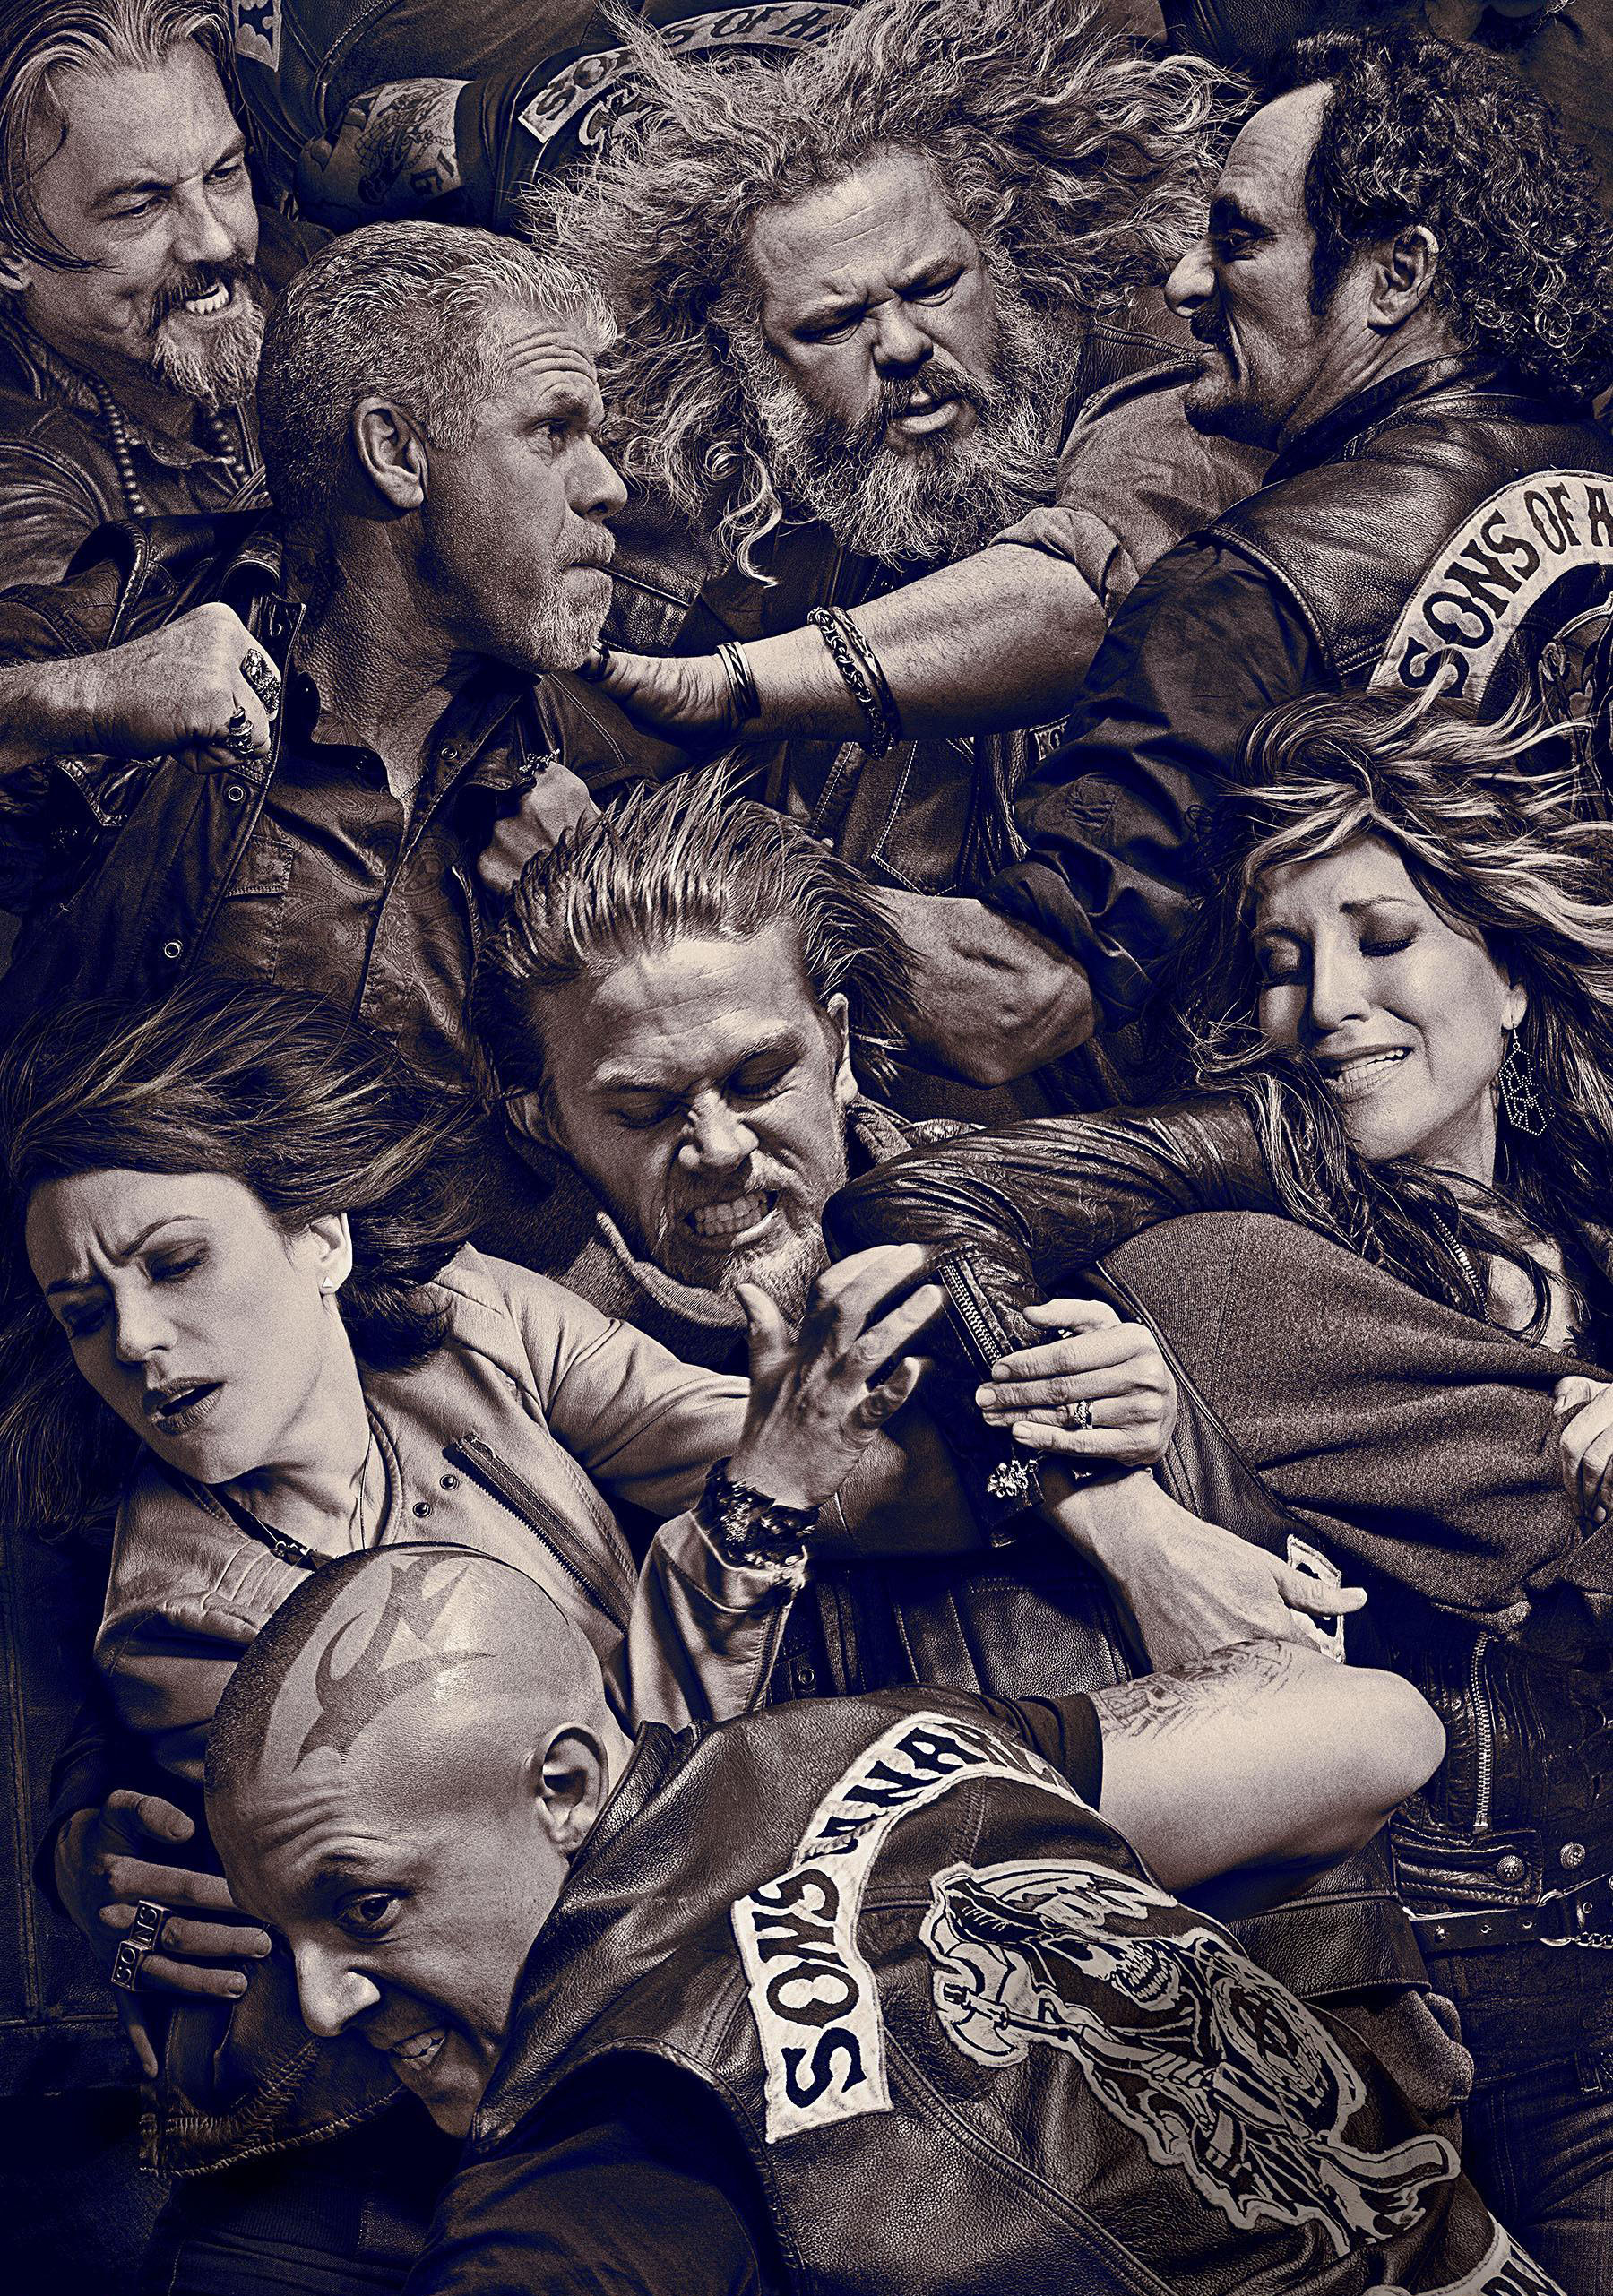 http://seriesaddict.fr/images/galerie/originals/Sons-of-Anarchy/promoSaison-6/Sons-Of-Anarchy-Saison-6-Promo-Cast-11.jpg